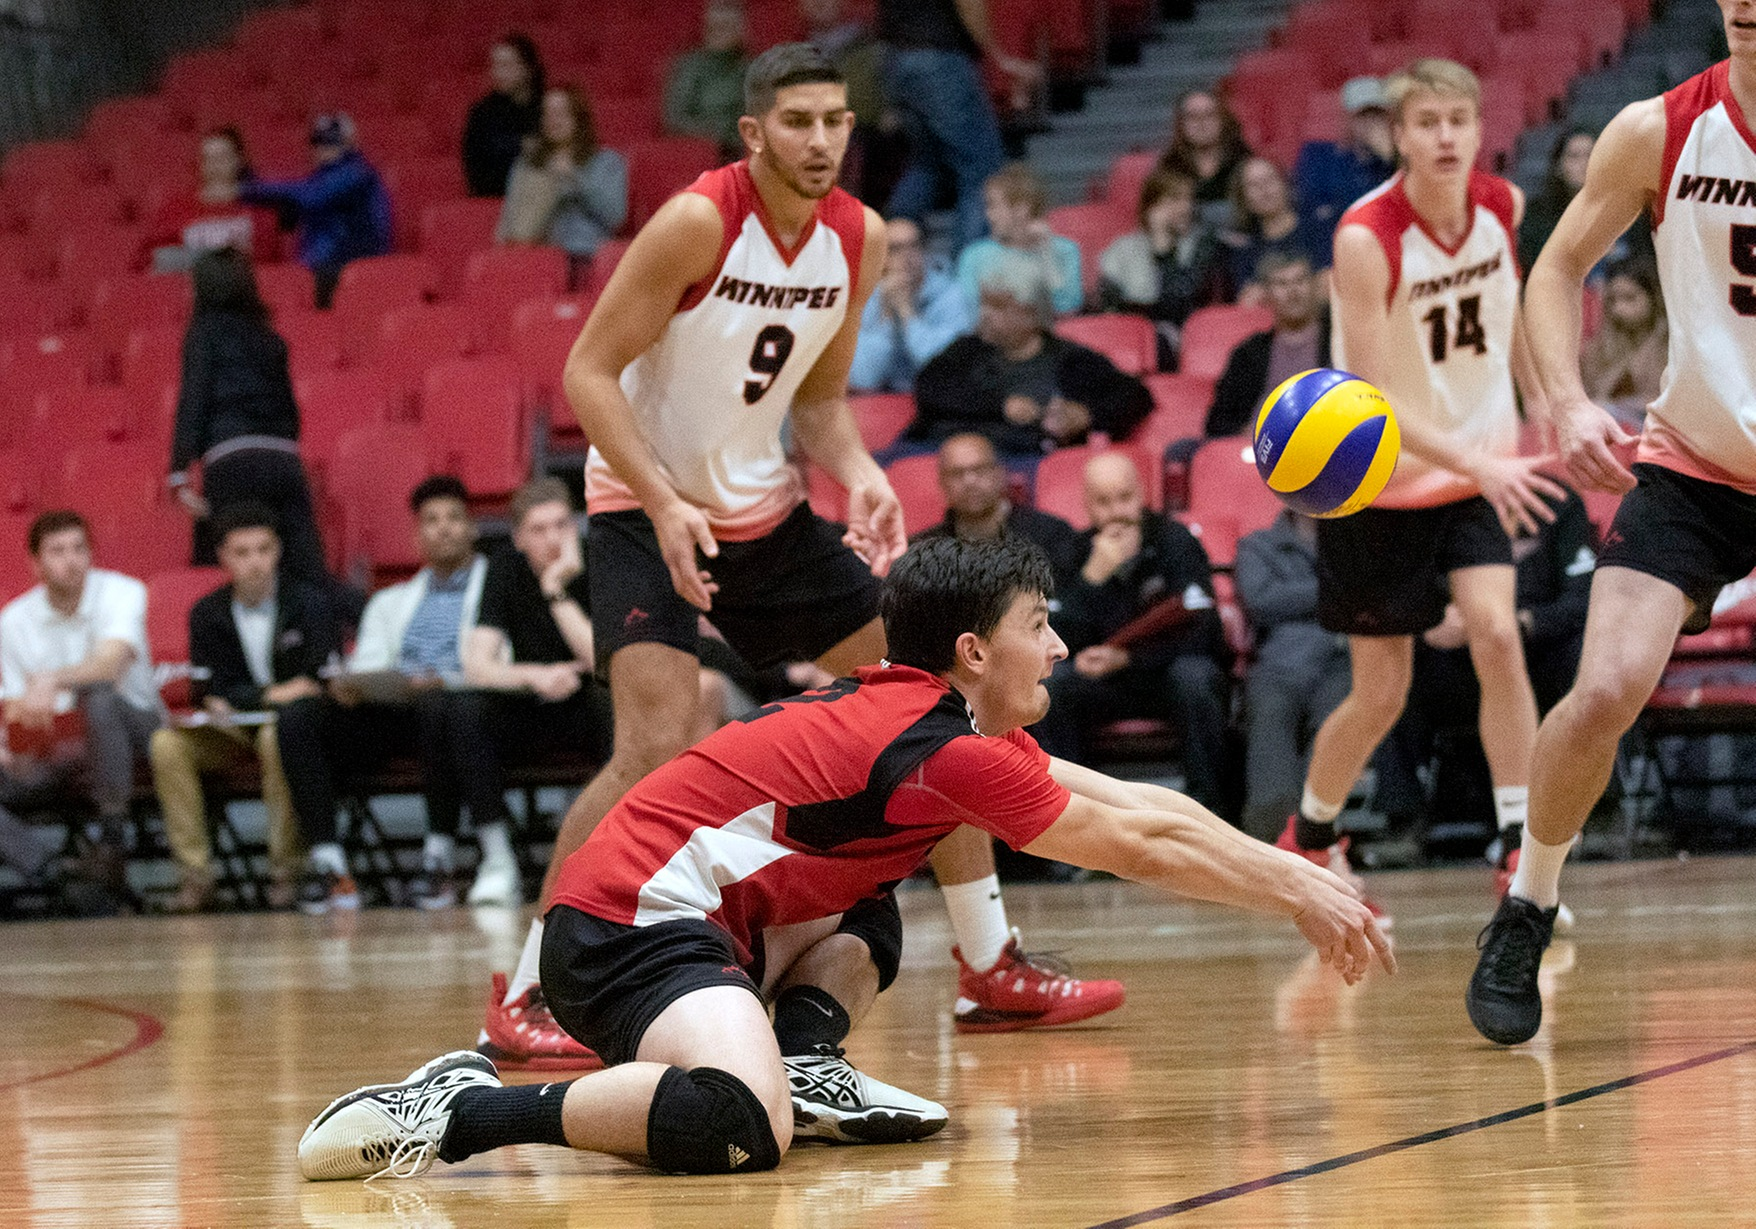 Darian Picklyk had a match-high seven digs for the Wesmen men's volleyball team during a loss at Alberta Saturday night. (David Larkins/Wesmen Athletics file)